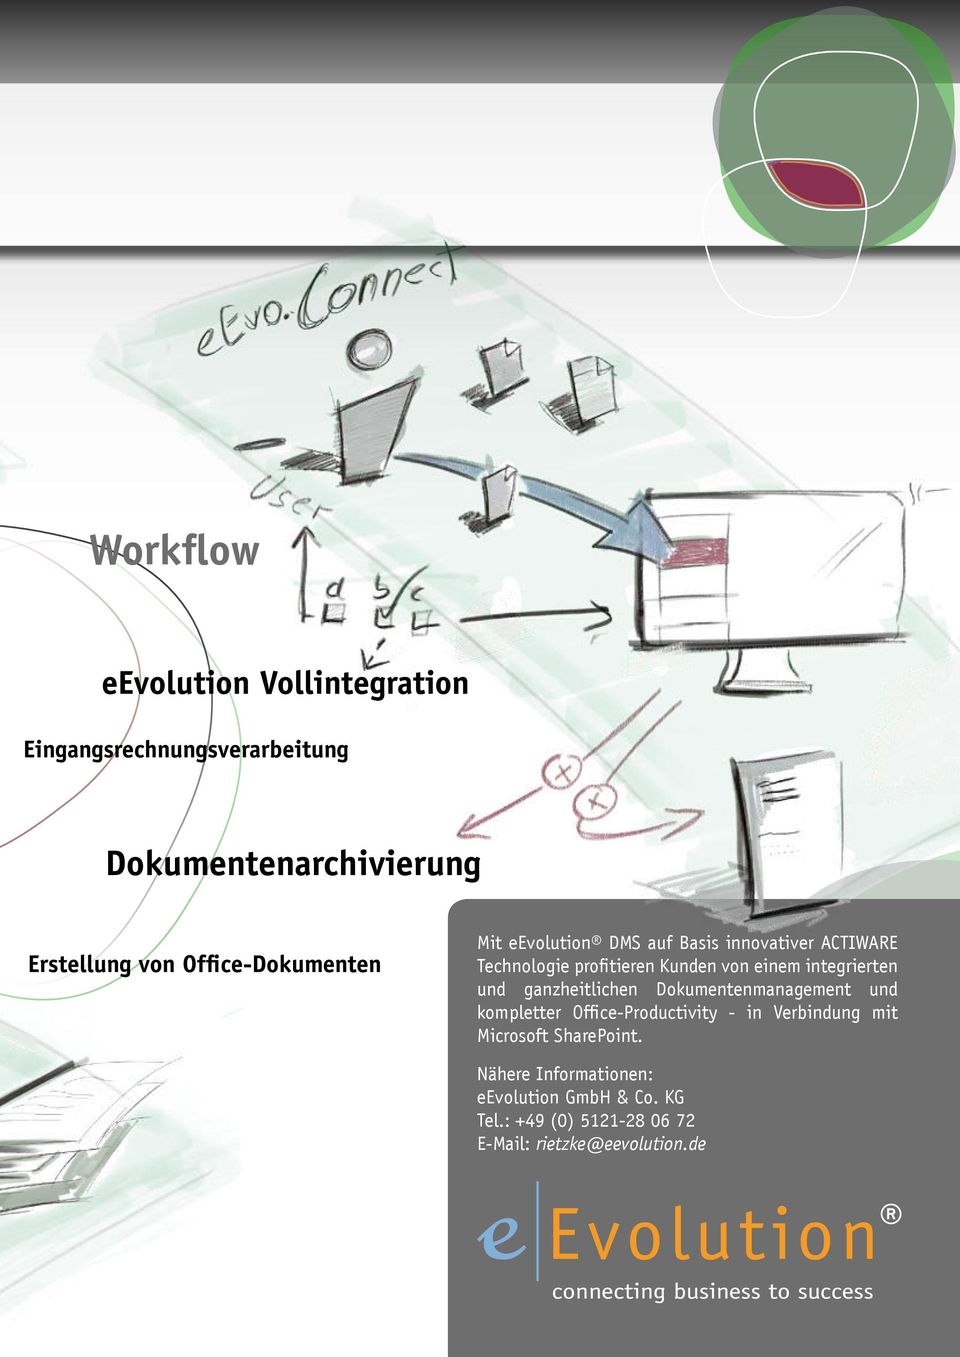 Office-Productivity - in Verbindung mit Microsoft SharePoint.